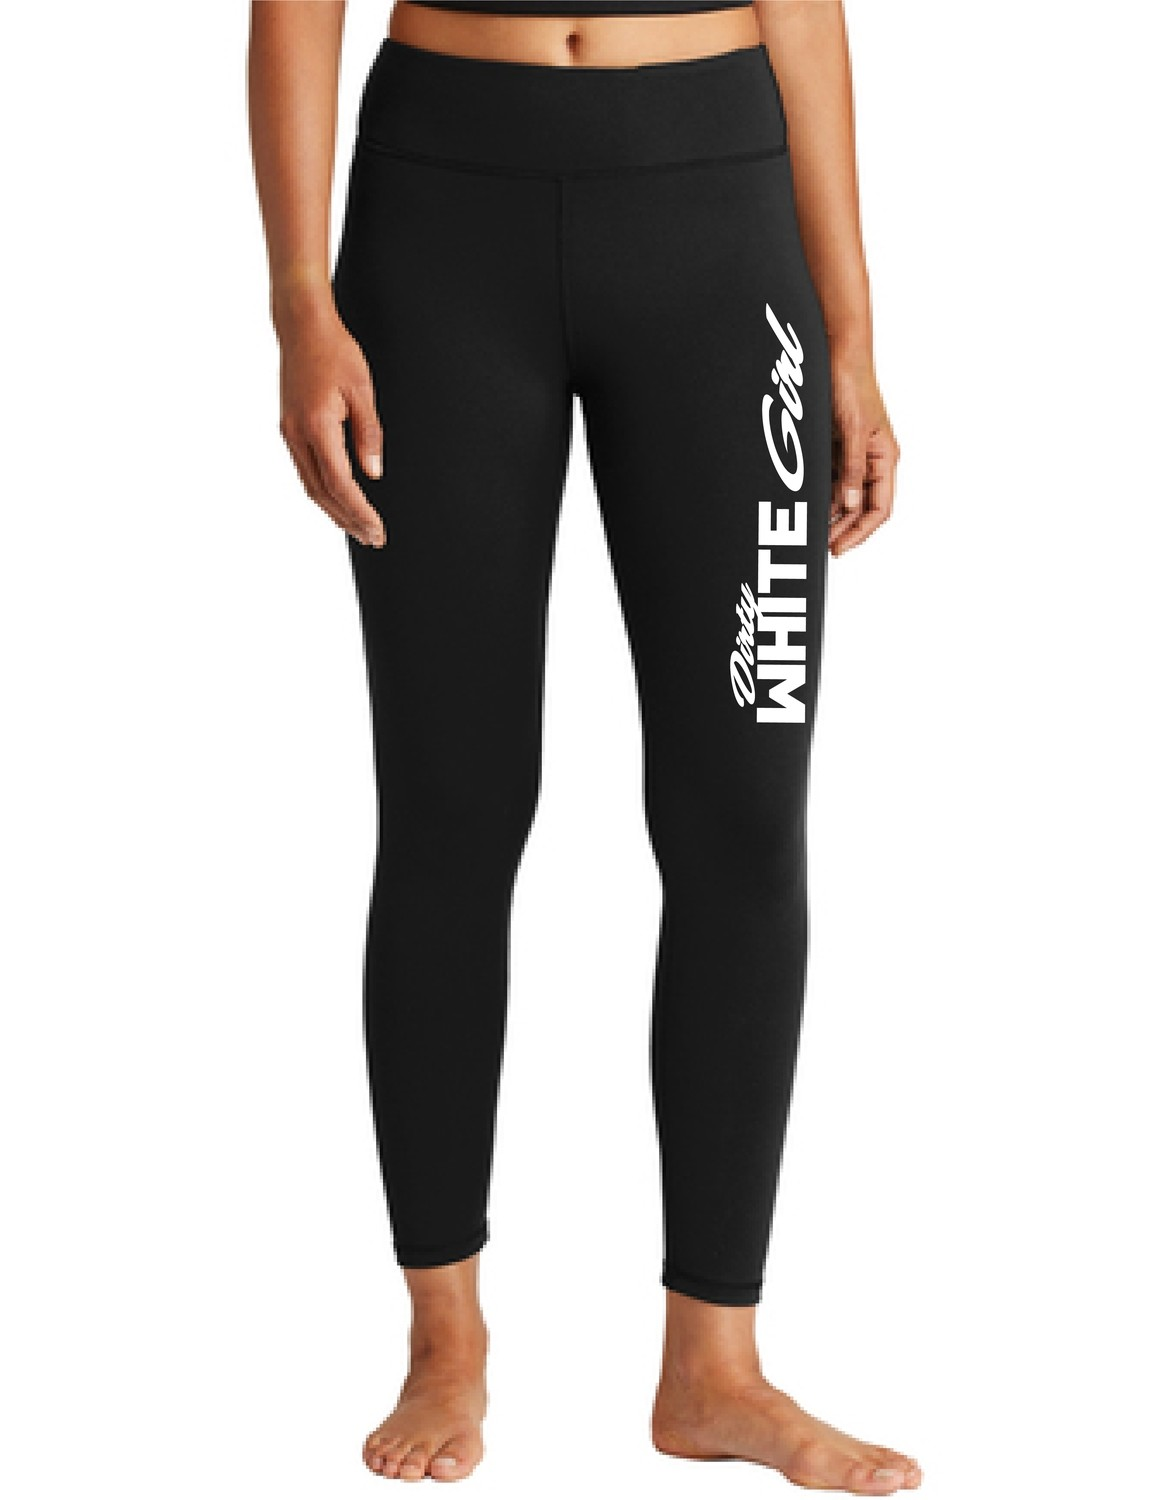 Dirty White Girl Racing Leggings